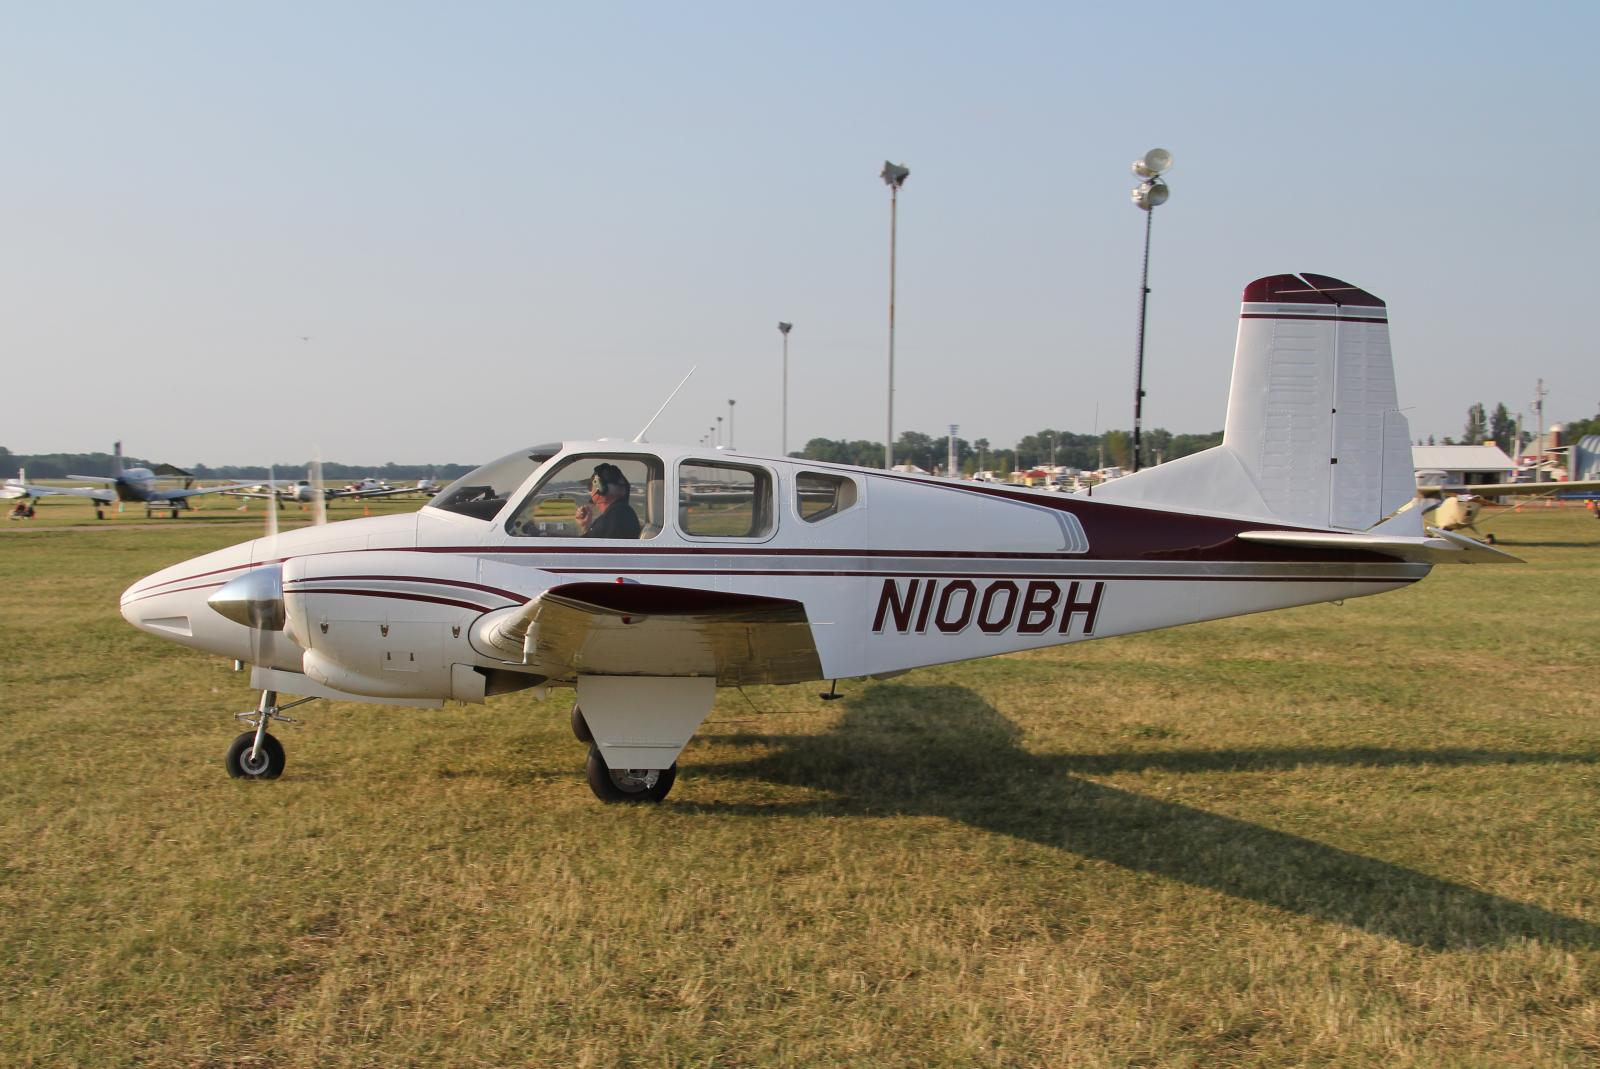 File Beechcraft Travel Air N100bh Jpg